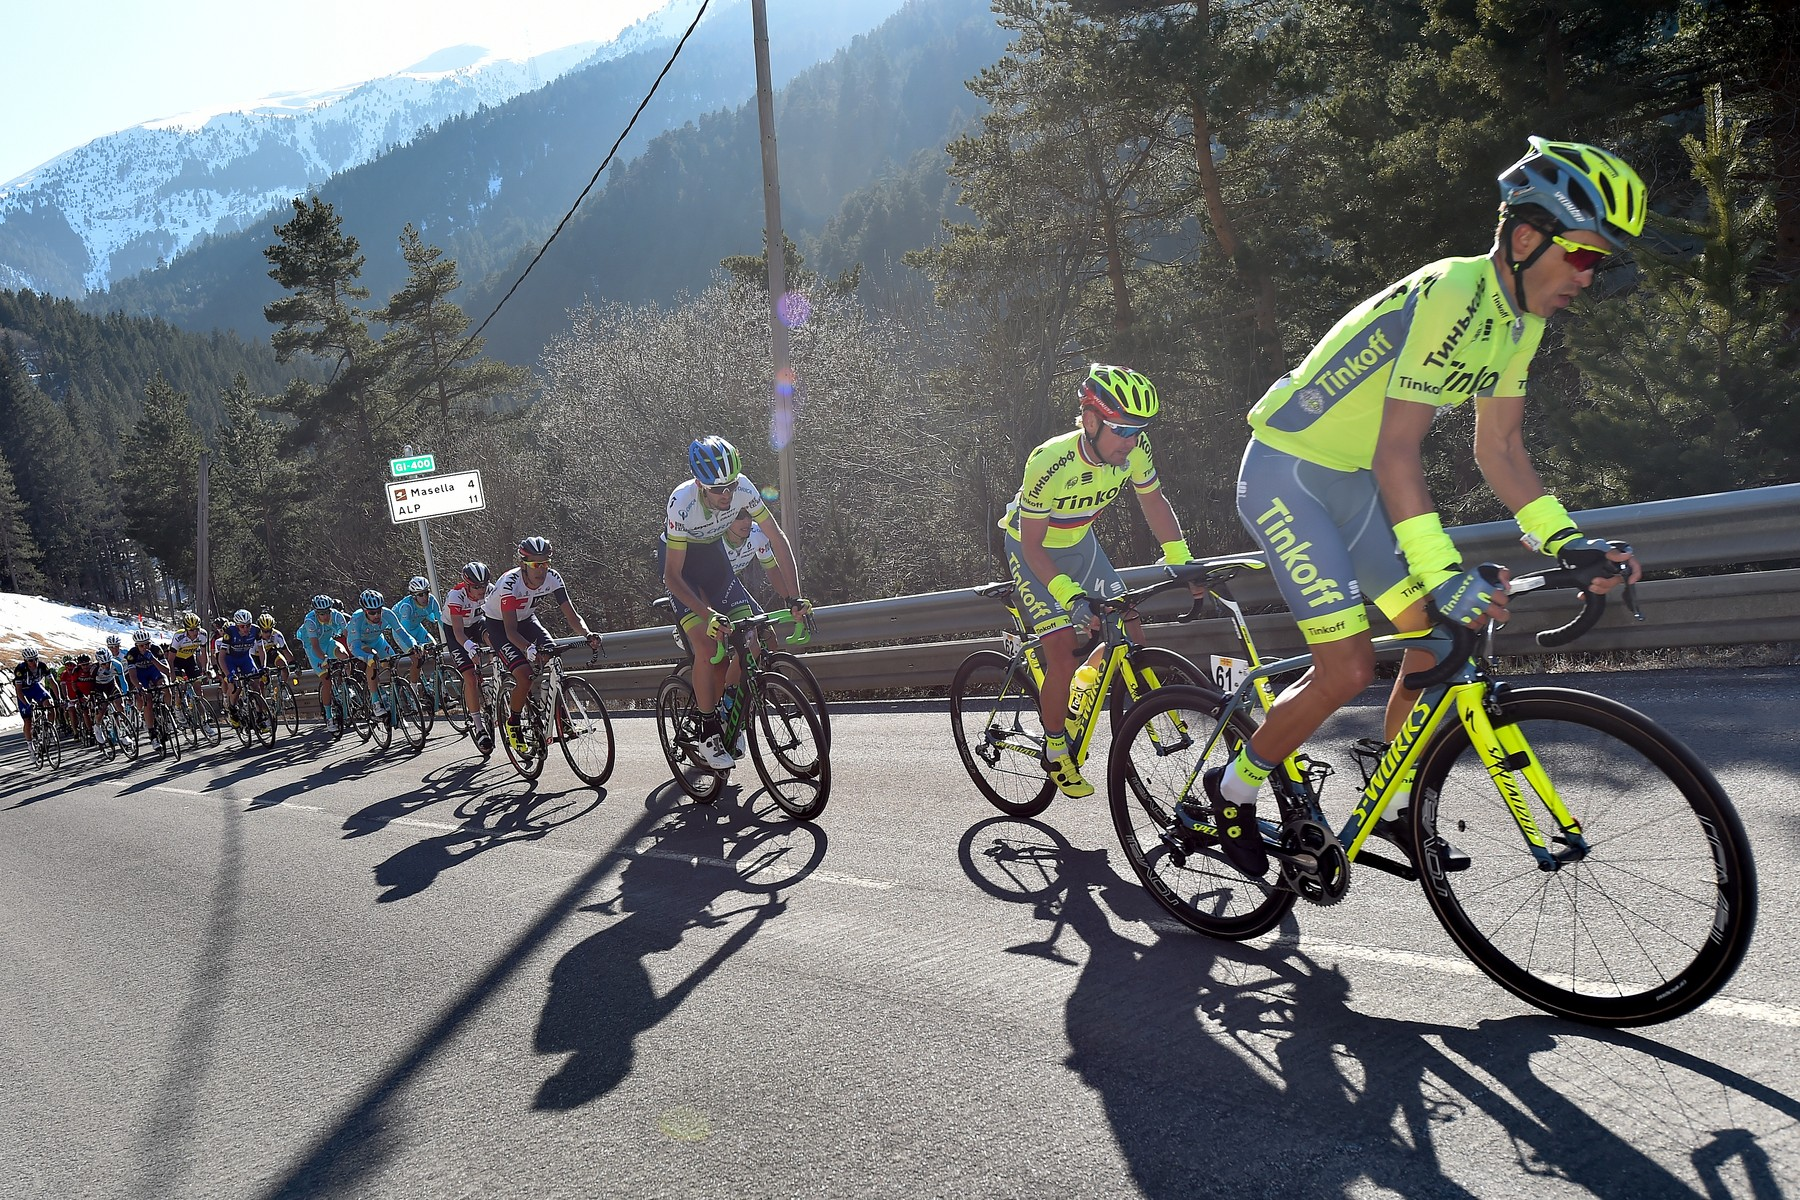 Tinkoff Spanish rider Alberto Contador competes during the 172,1km Girona to La Molina third stage of the 96th Volta Catalunya, near la Molina on March 23, 2016., Image: 279142735, License: Rights-managed, Restrictions: , Model Release: no, Credit line: Profimedia, AFP